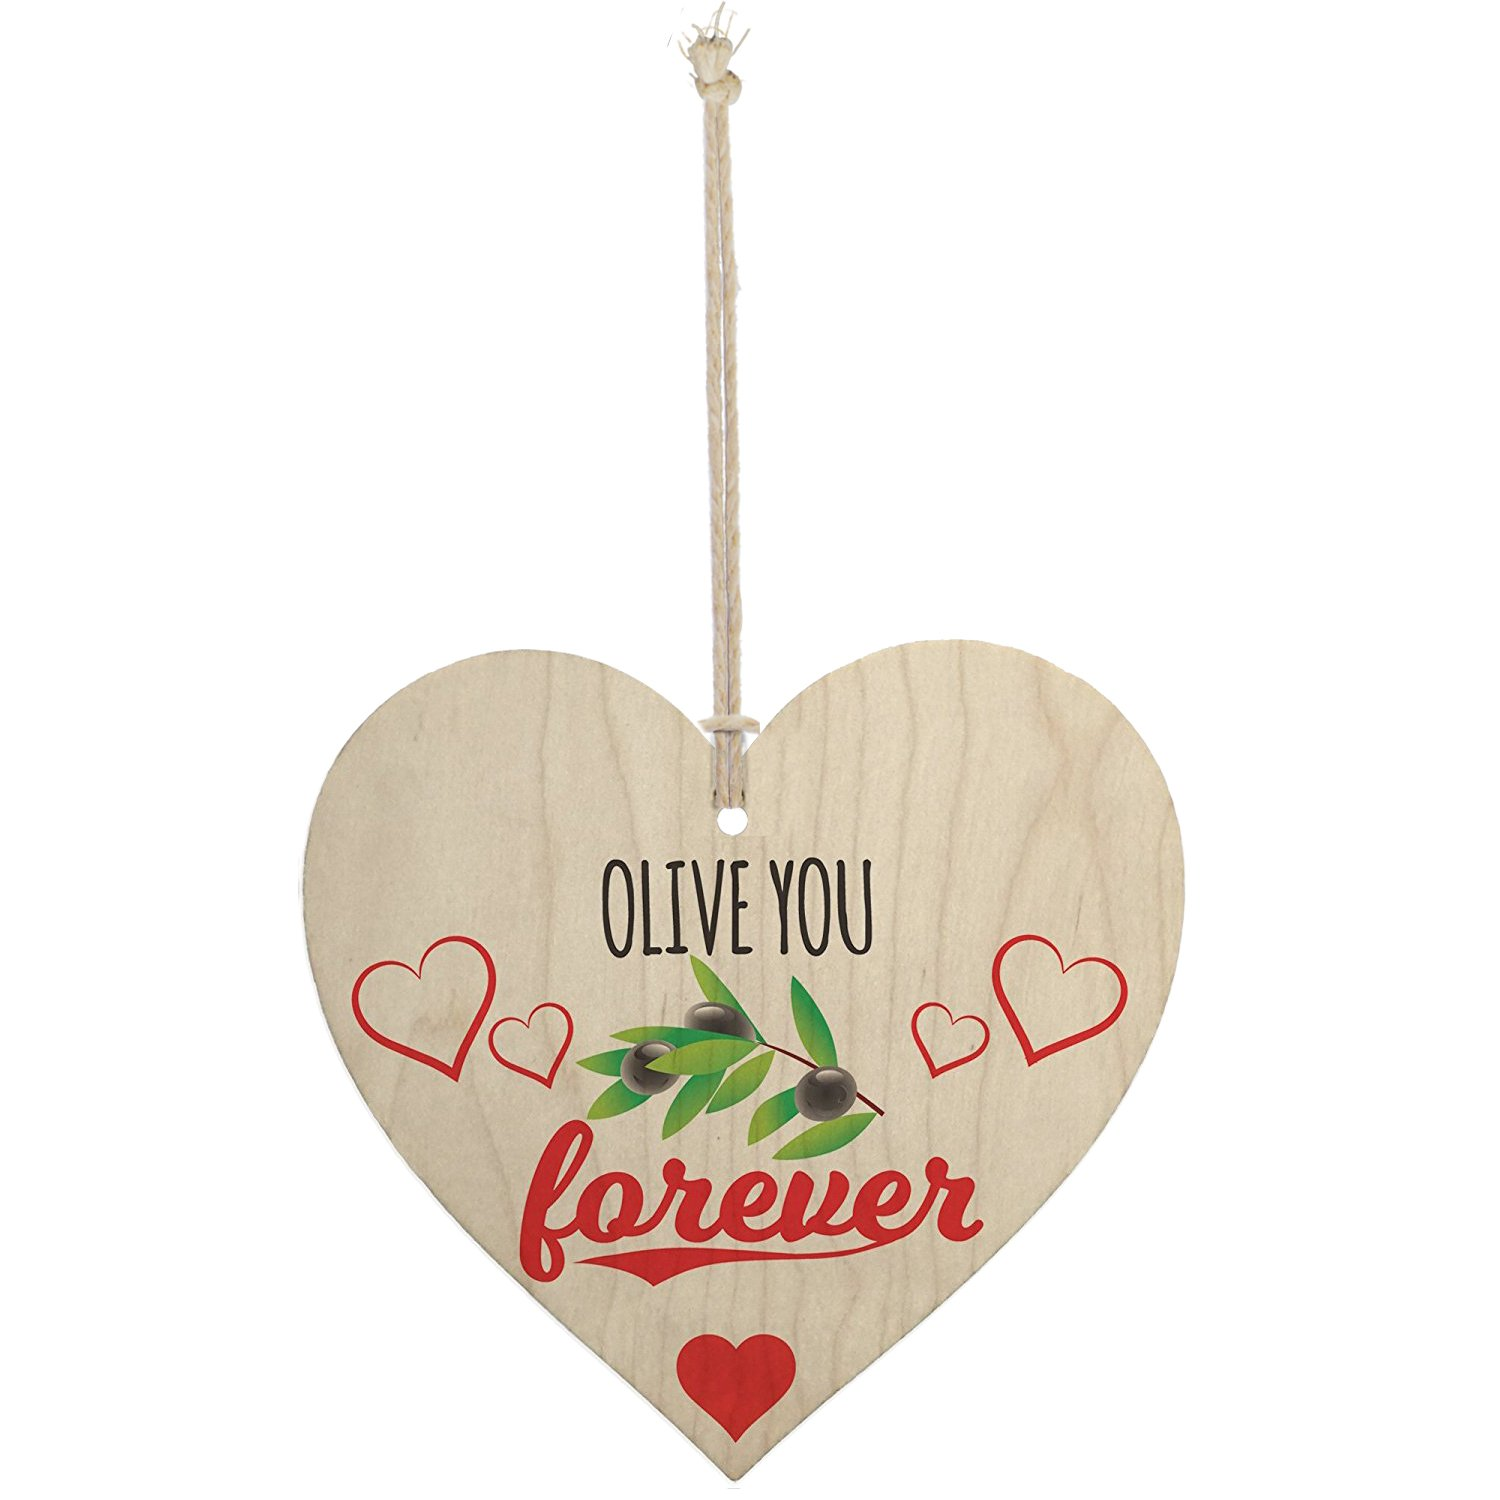 Meijiafei Olive You Forever Wooden Hanging Heart Plaque Kitchen Sign Cute Valentines Gift